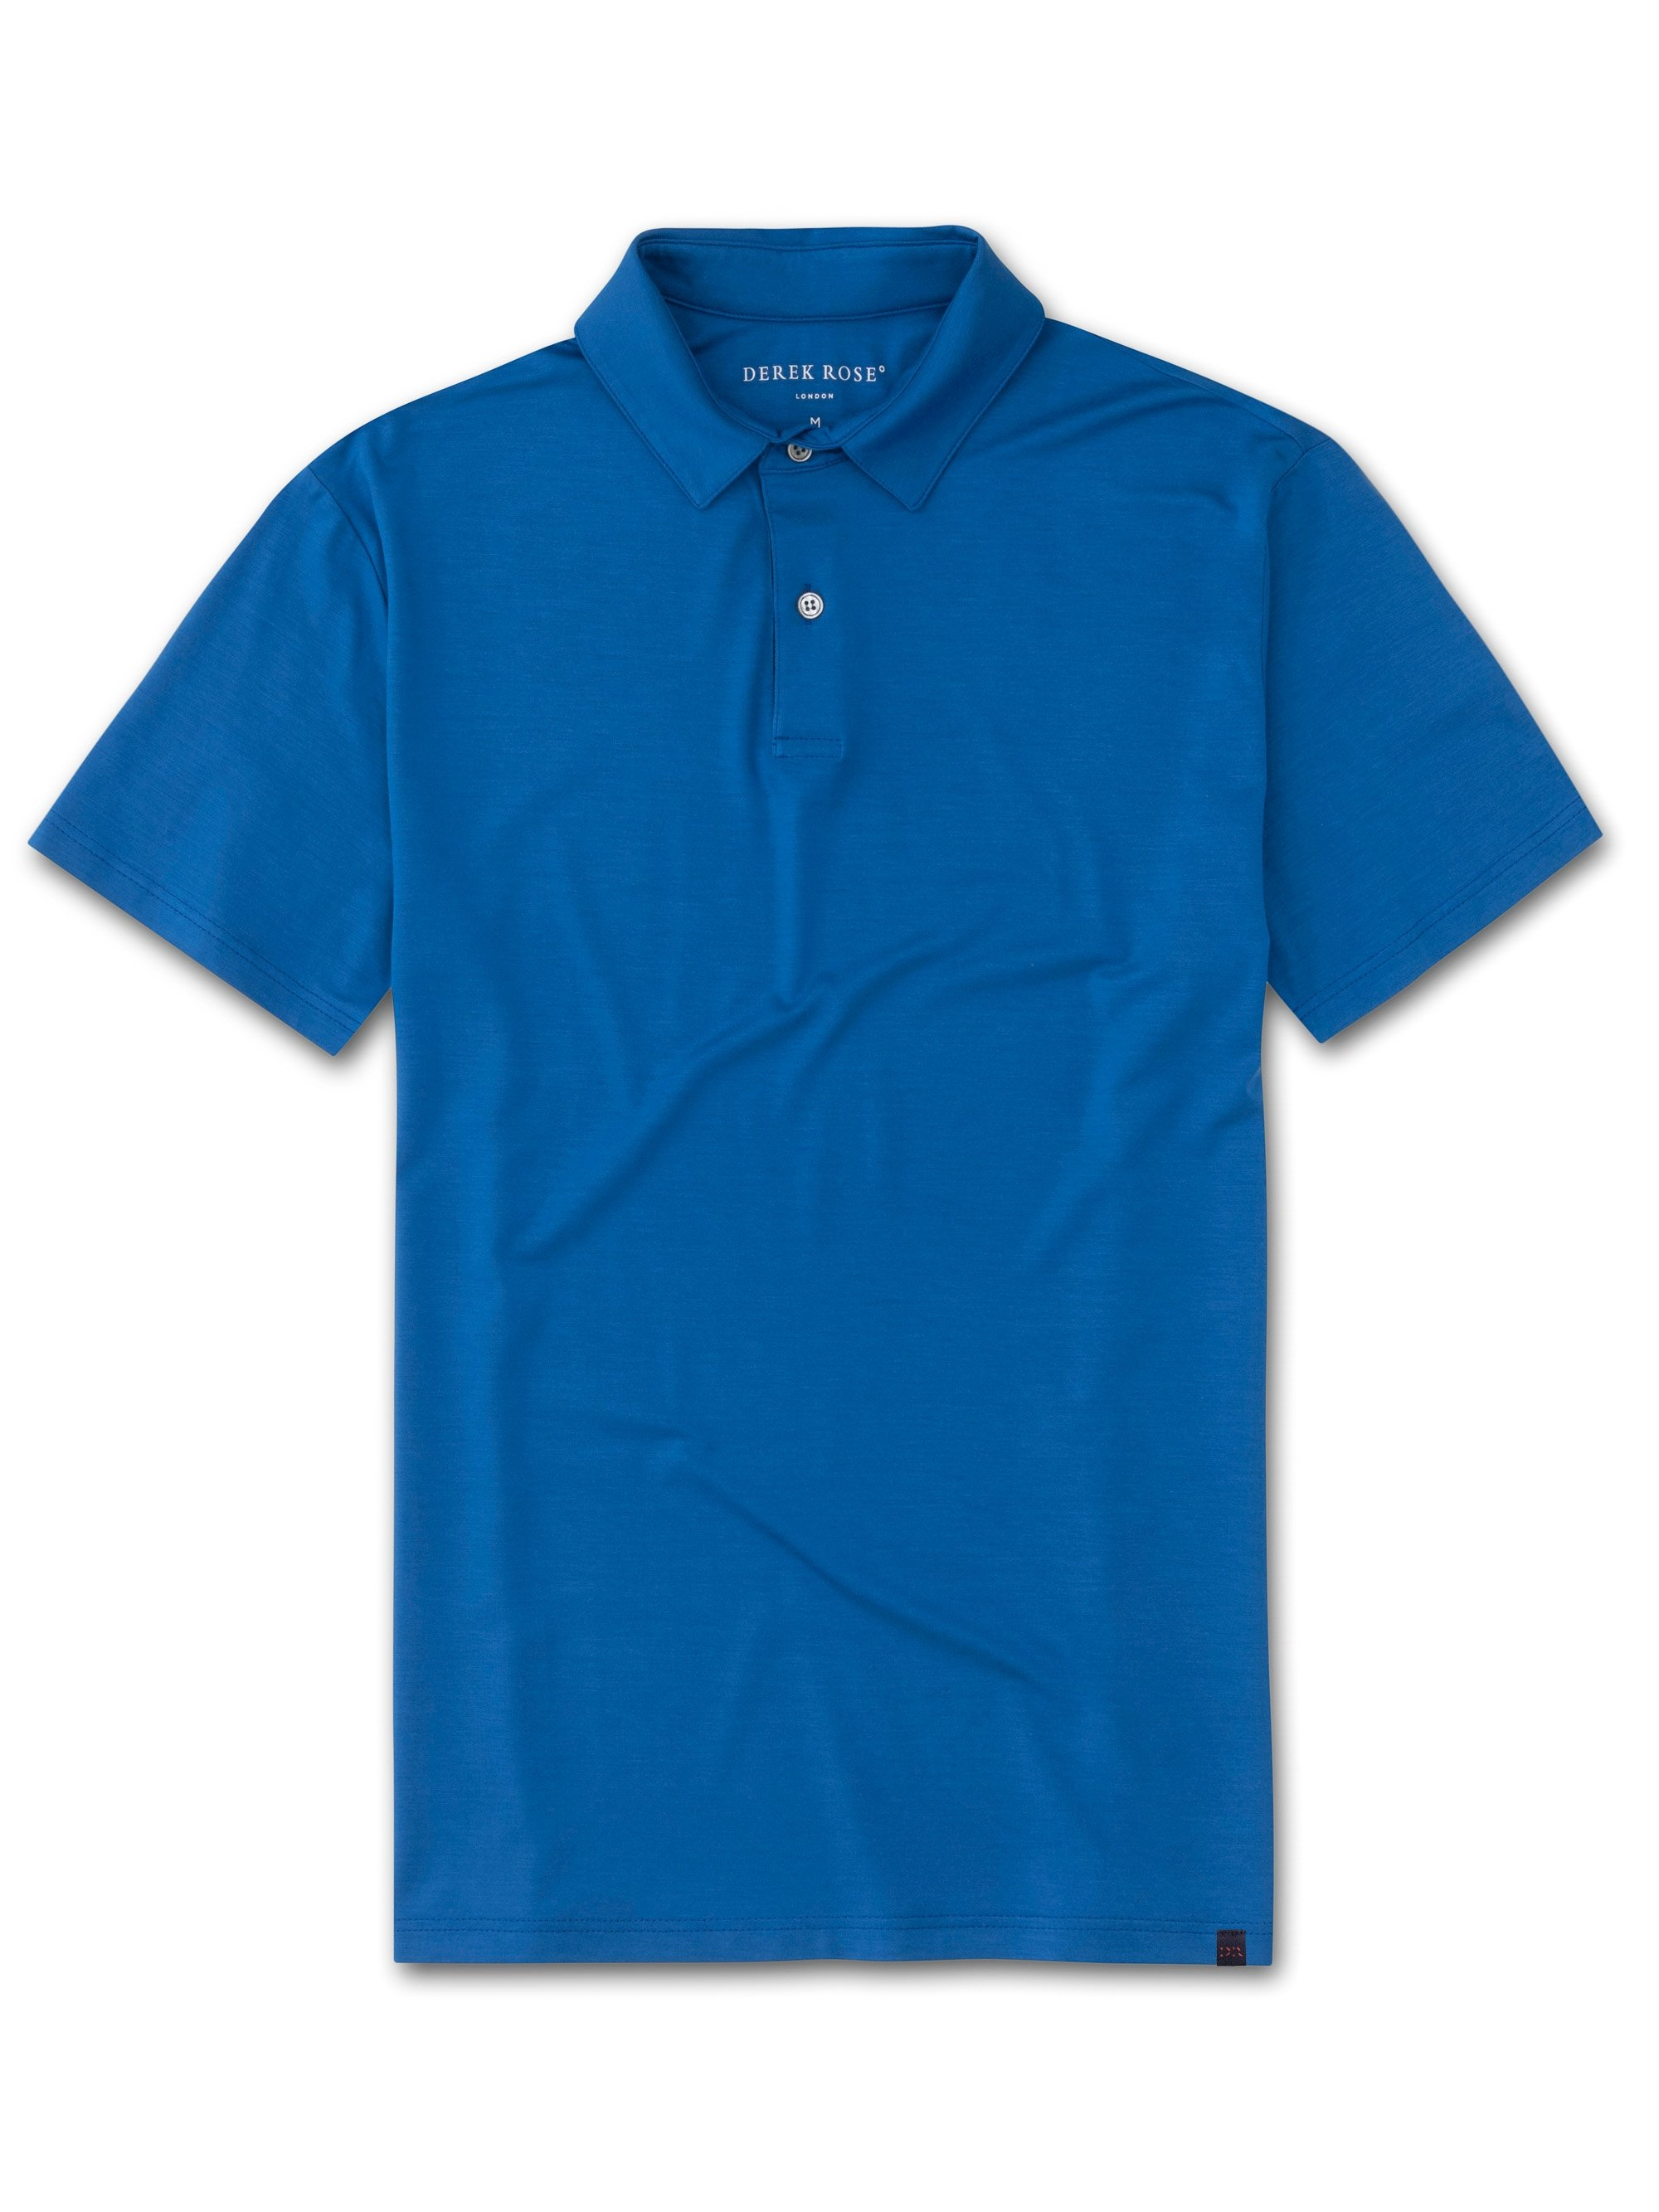 Men's Short Sleeve Polo Shirt Basel 8 Micro Modal Stretch Blue